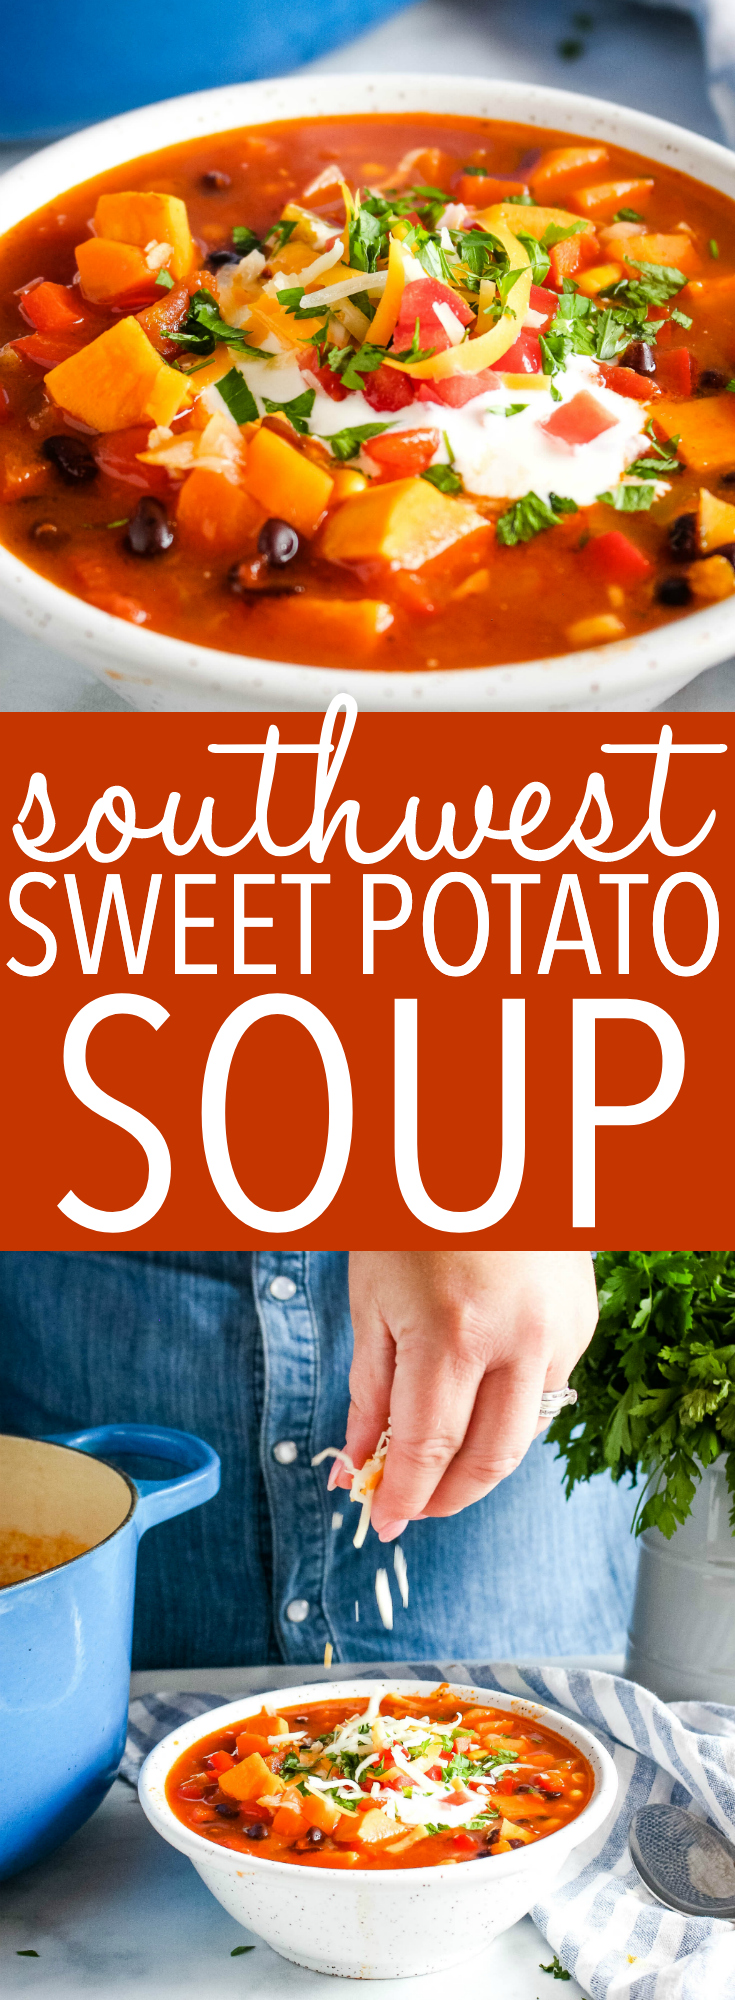 This Easy Southwest Sweet Potato Soup is an easy hearty and filling soup, made Tex-Mex style with sweet potatoes, black beans and tomatoes and topped with sour cream, shredded cheese and cilantro! Can be made vegetarian or vegan! Recipe from thebusybaker.ca! #recipe #soup #southwest #texmex #mexican #tortilla #burrito #healthy #vegan #vegetarian #familymeal #mealprep #mealplanning via @busybakerblog